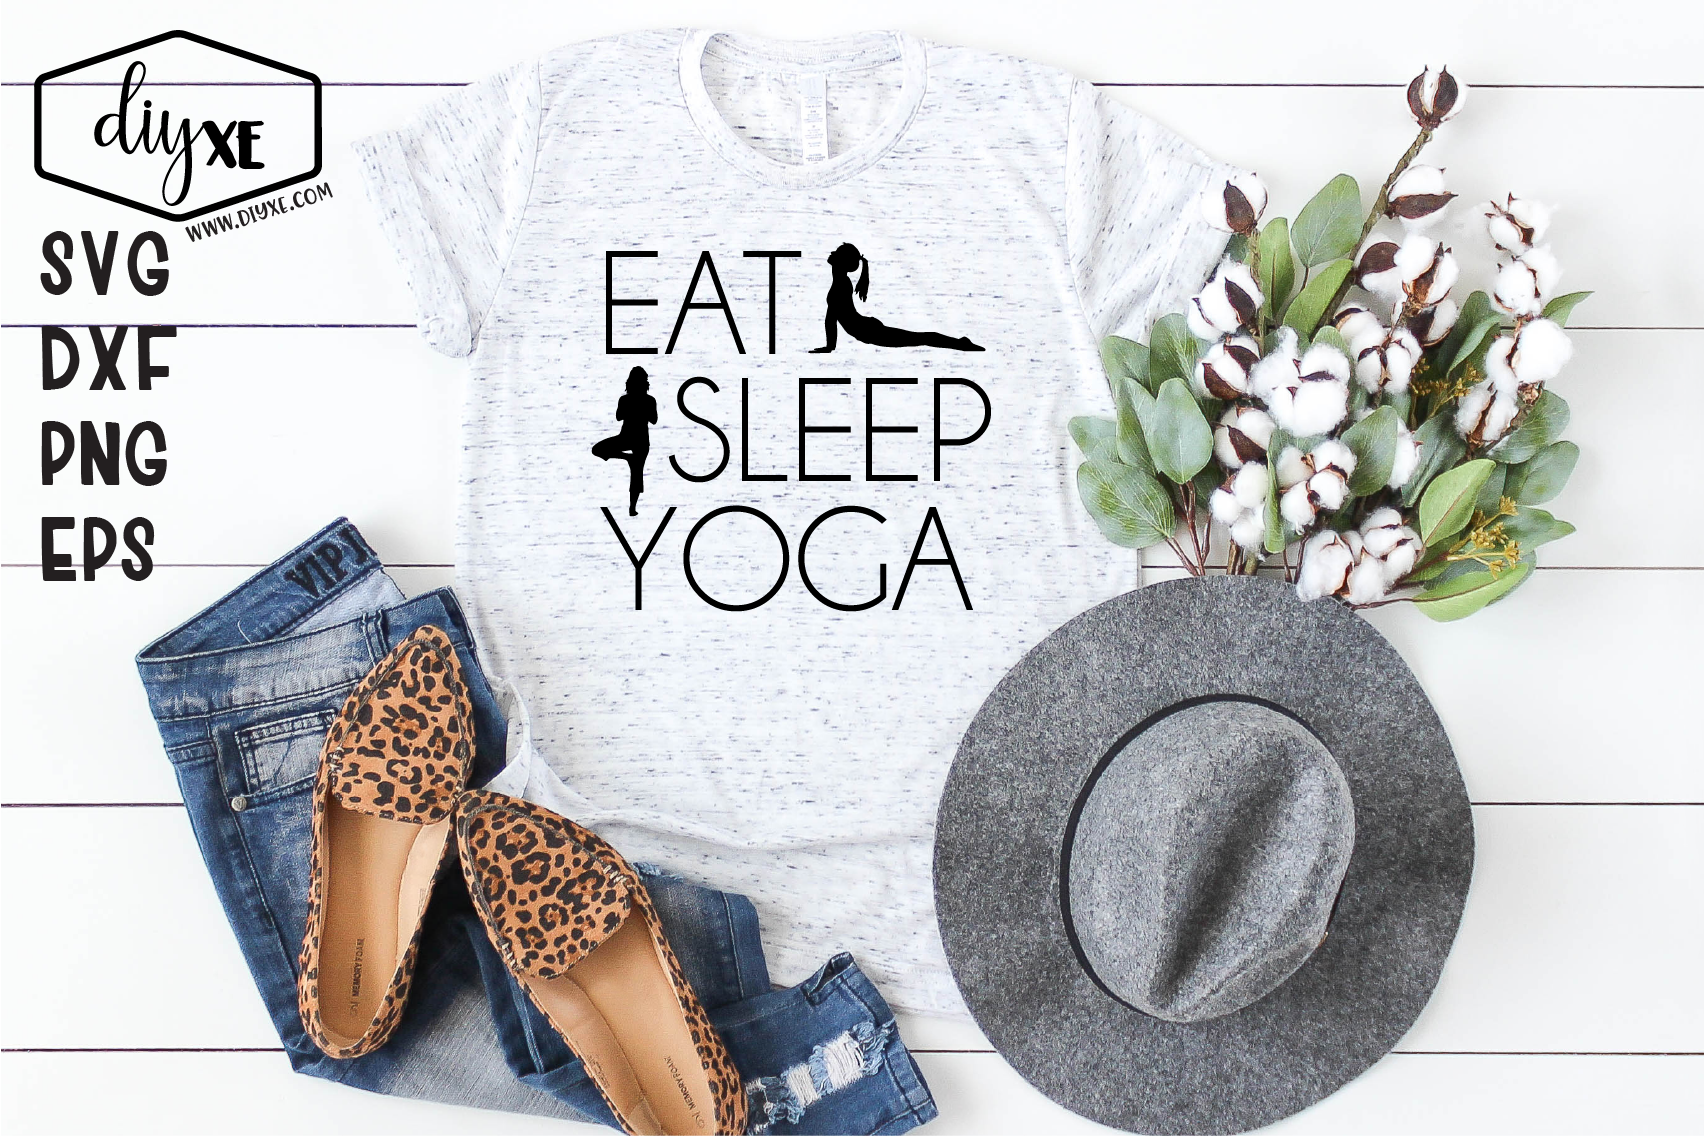 Eat Sleep Yoga - A Yoga SVG Cut File example image 1